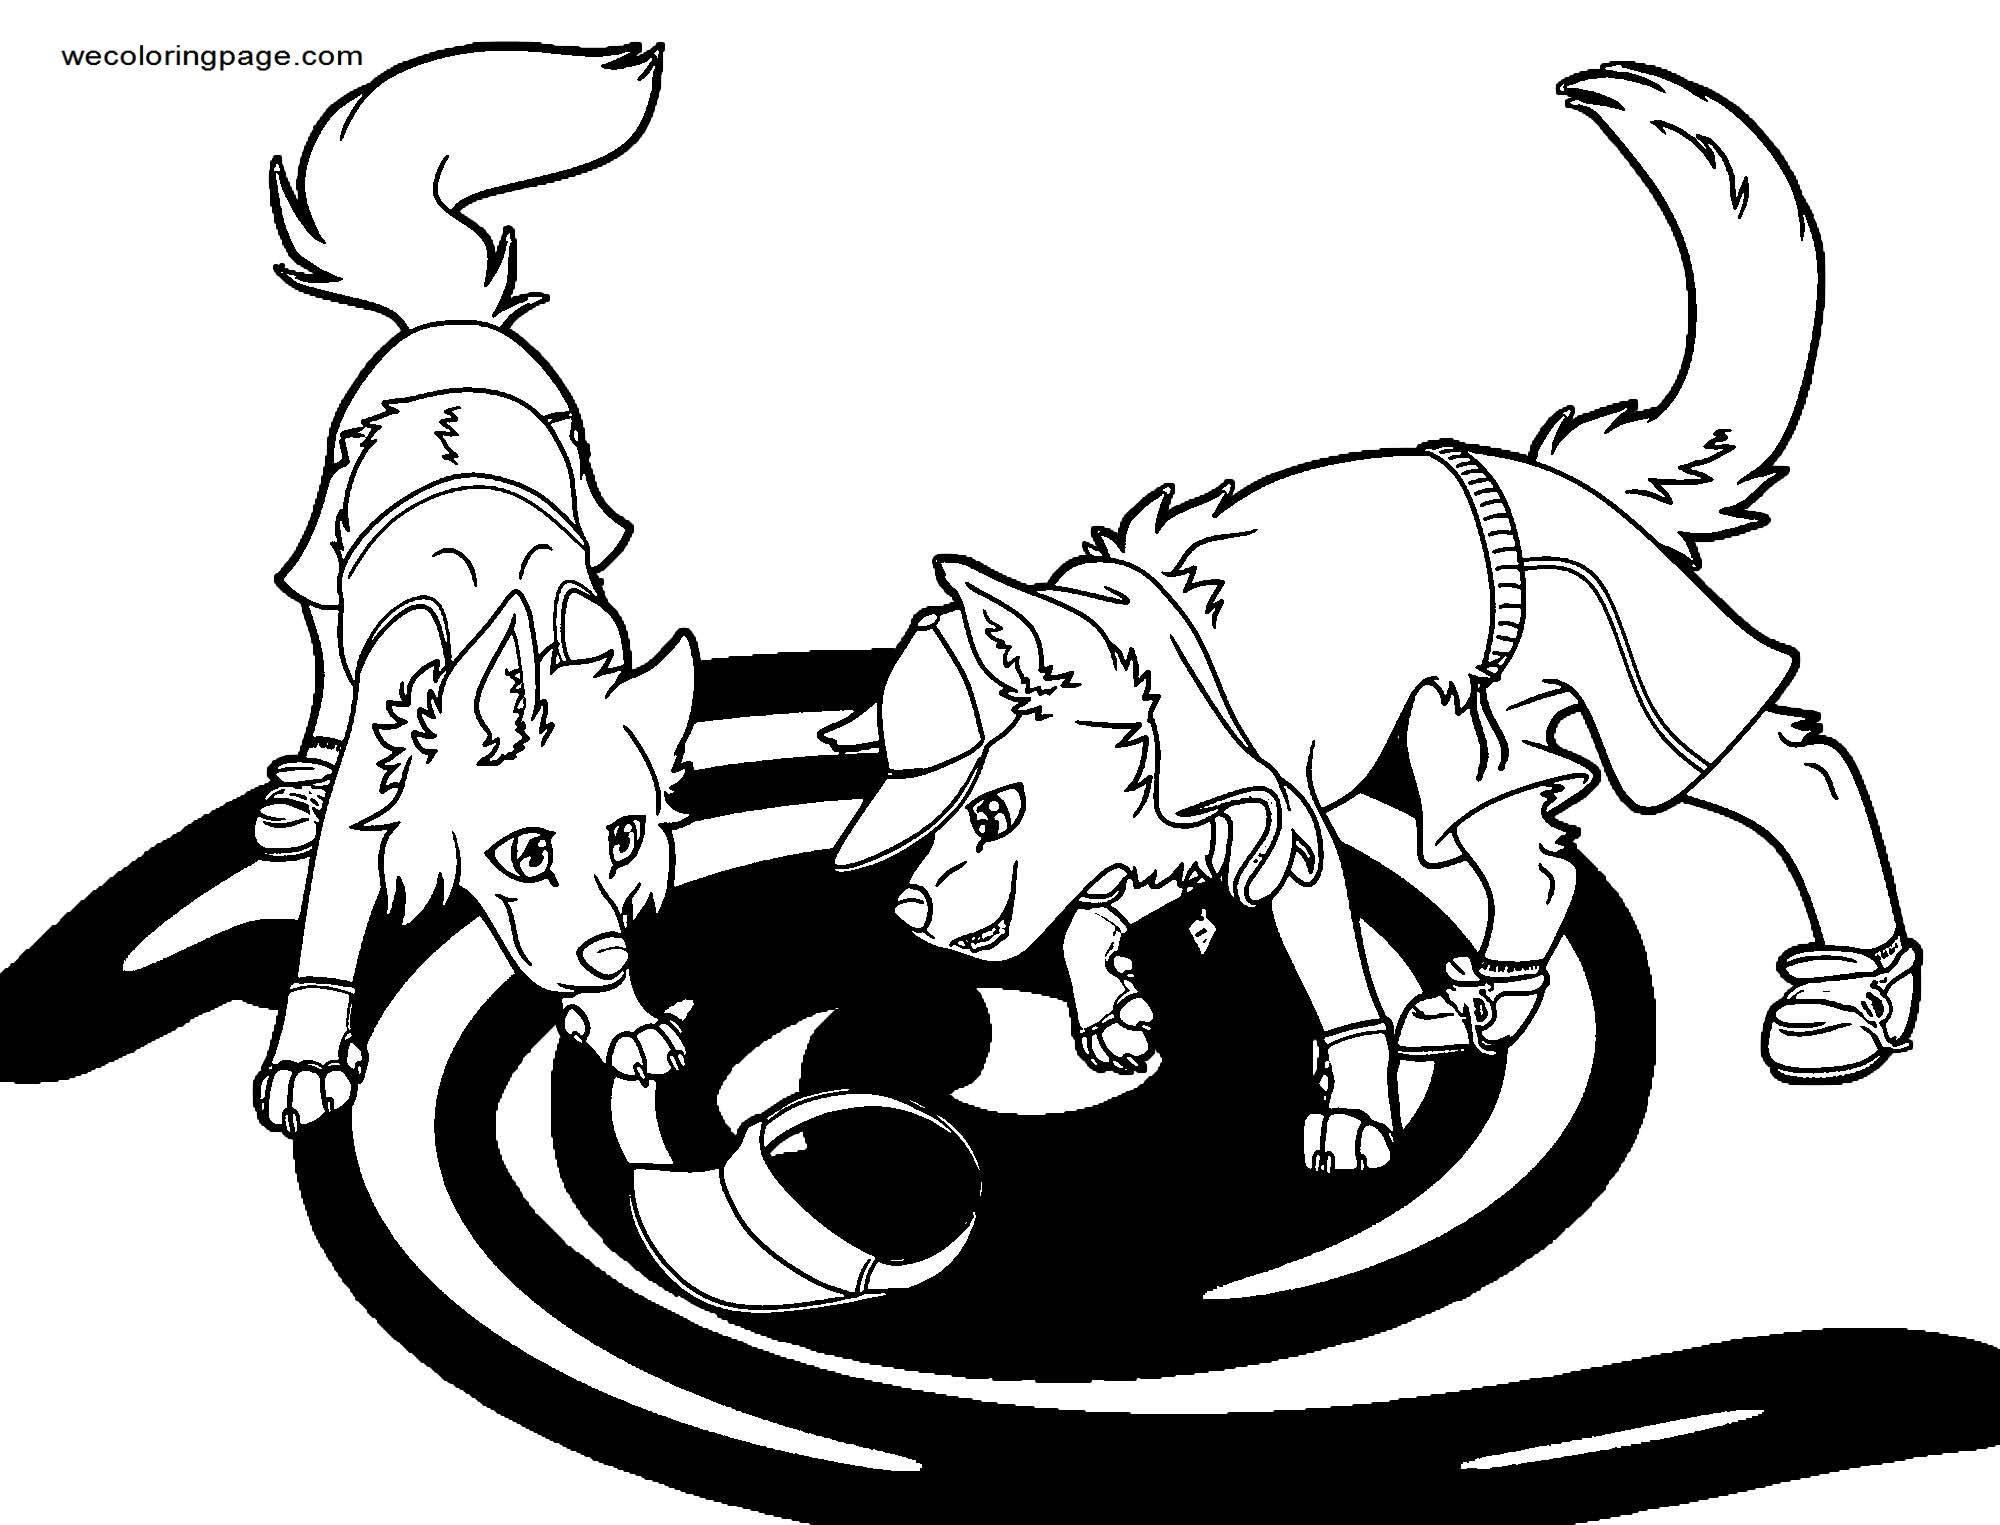 Cute Paw Patrol Dogs Coloring Page Wecoloringpage Com